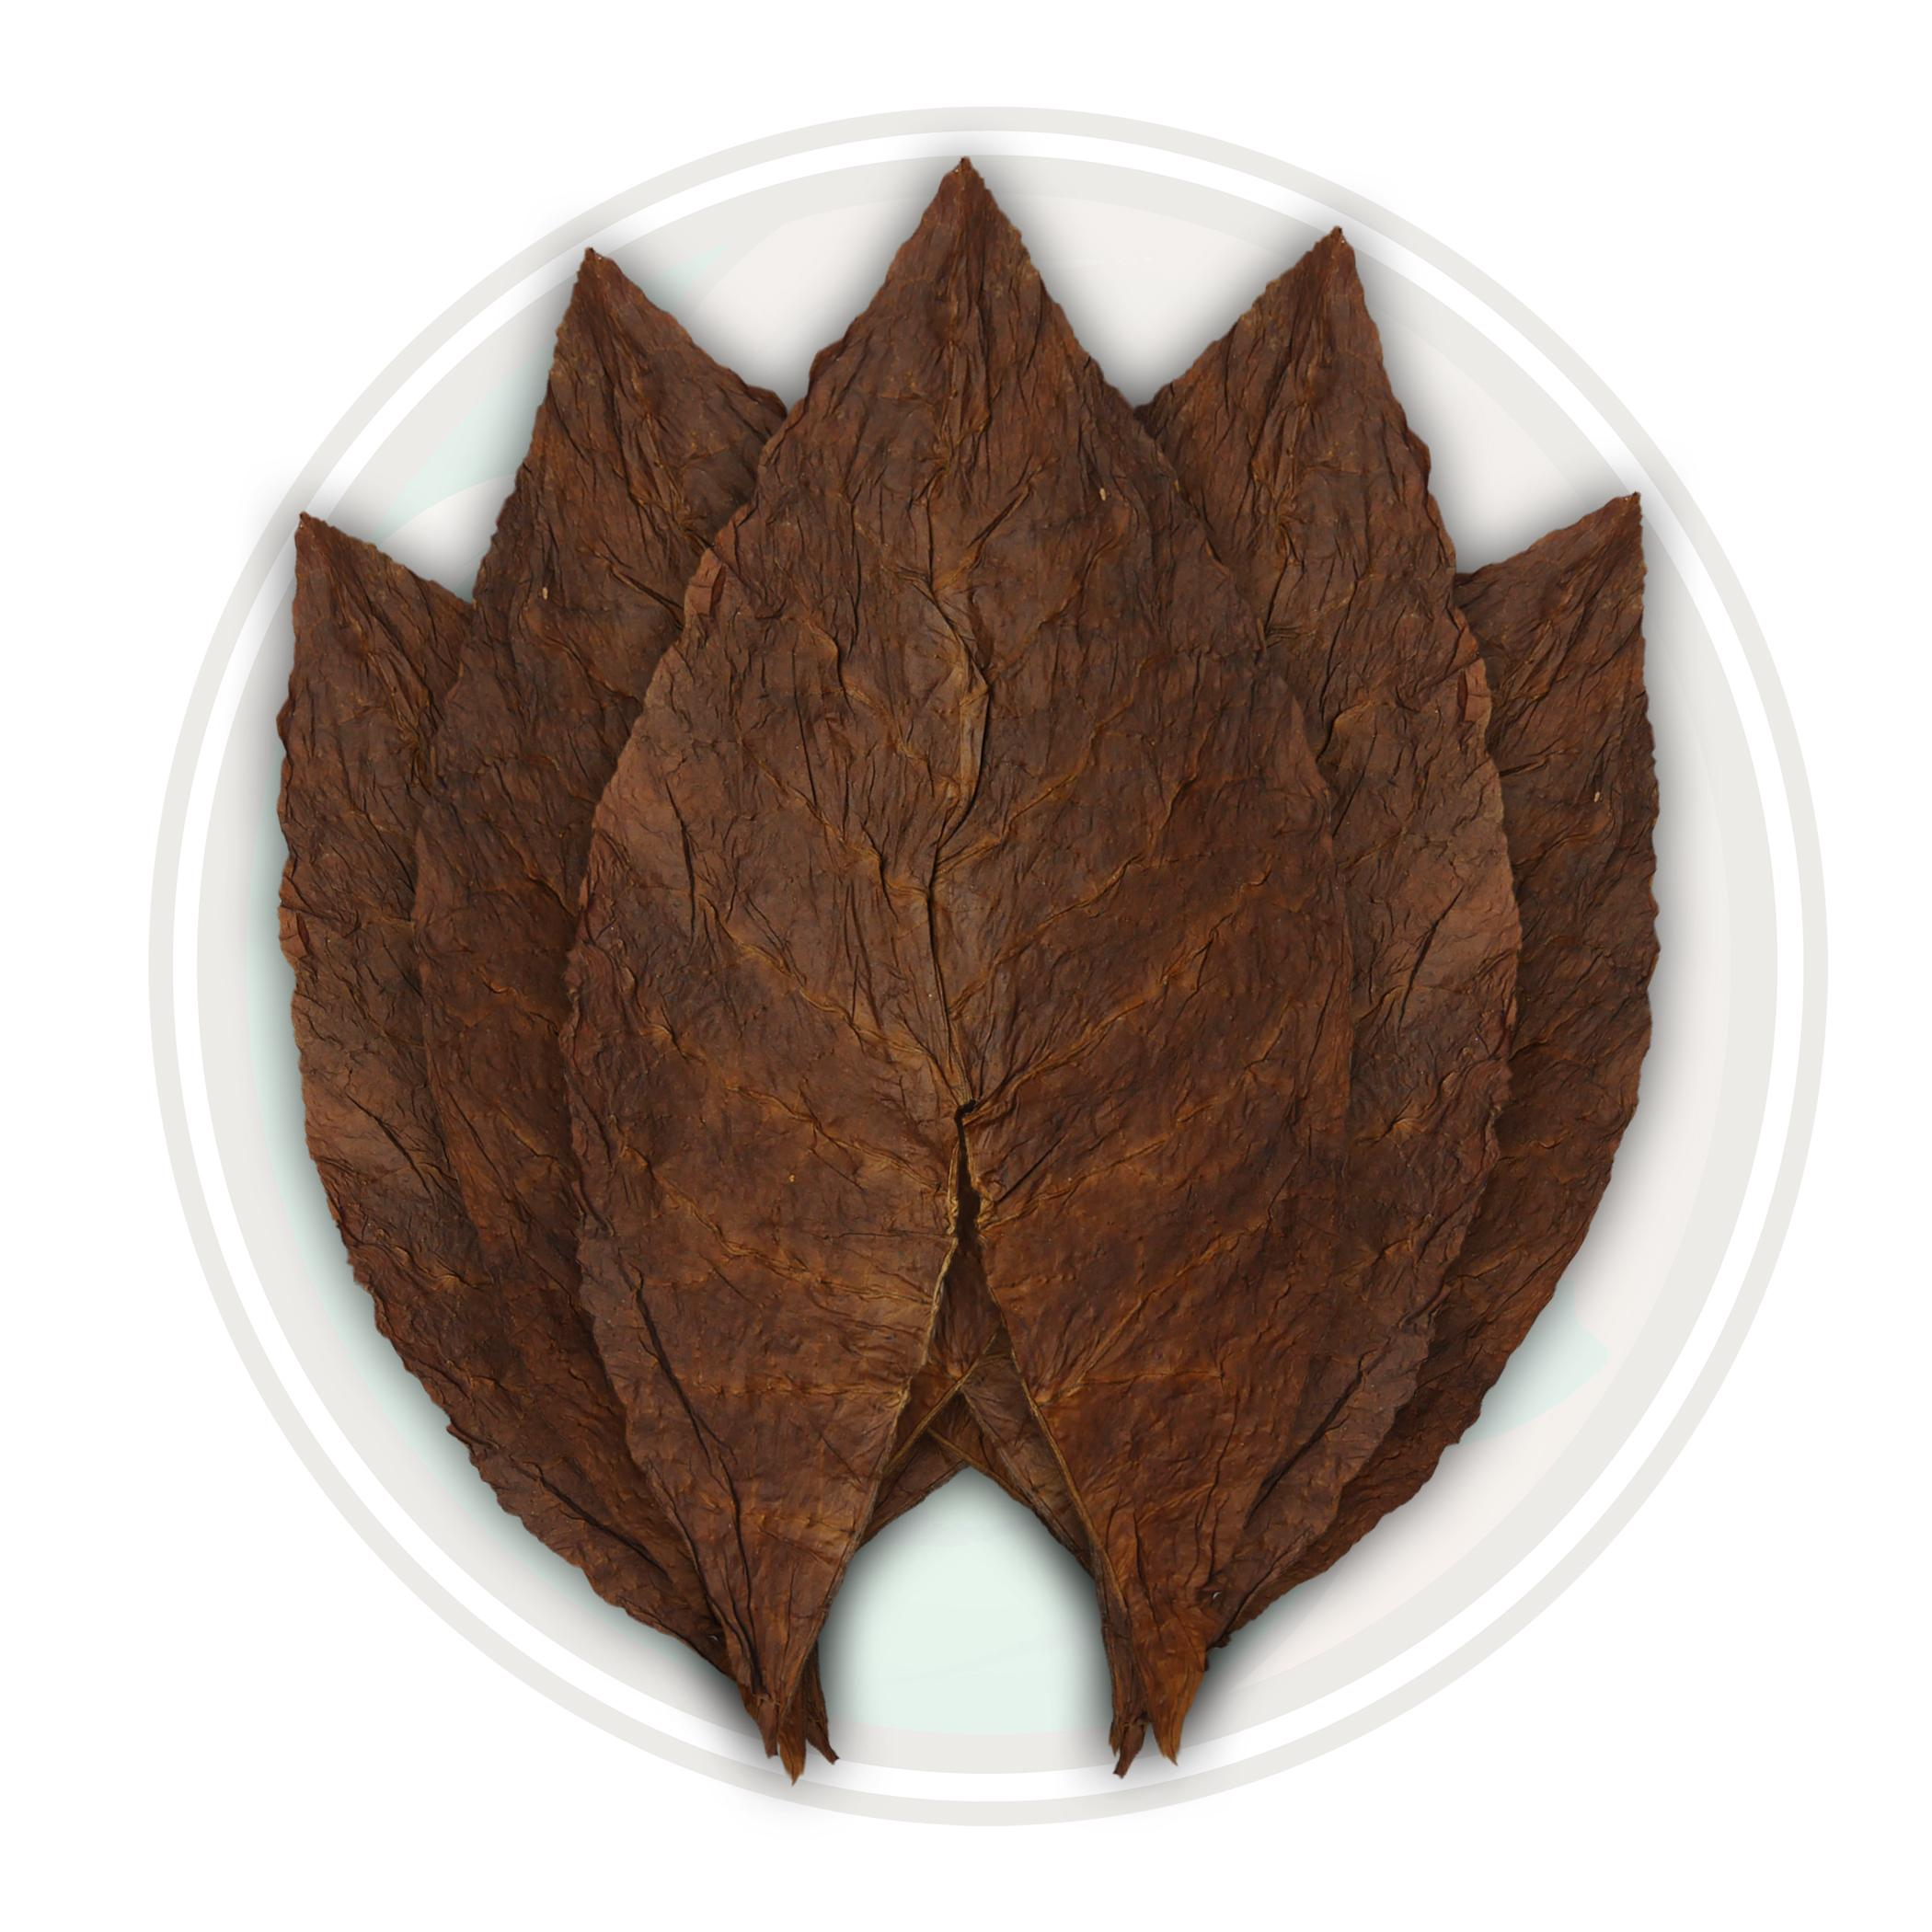 Dominican Seco Olor Cigar Filler Tobacco Leaf